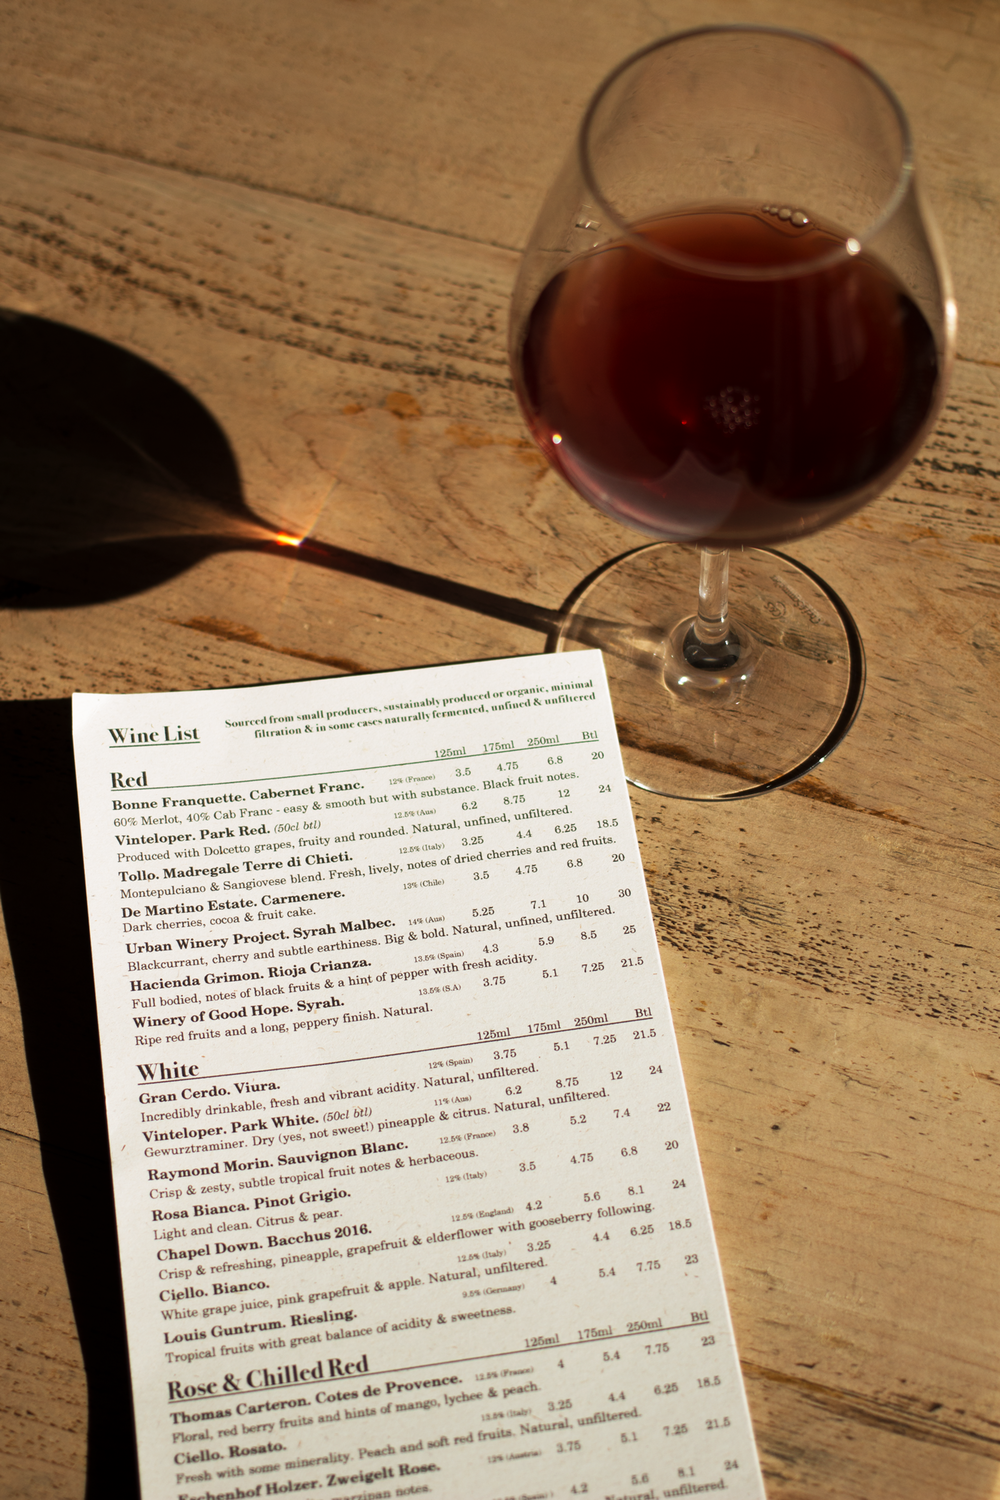 Bottle-Bitches-Taste-The-New-Wine-List-at-Fuggles-Beer-Cafe-In-Tunbridge-Wells-1.png